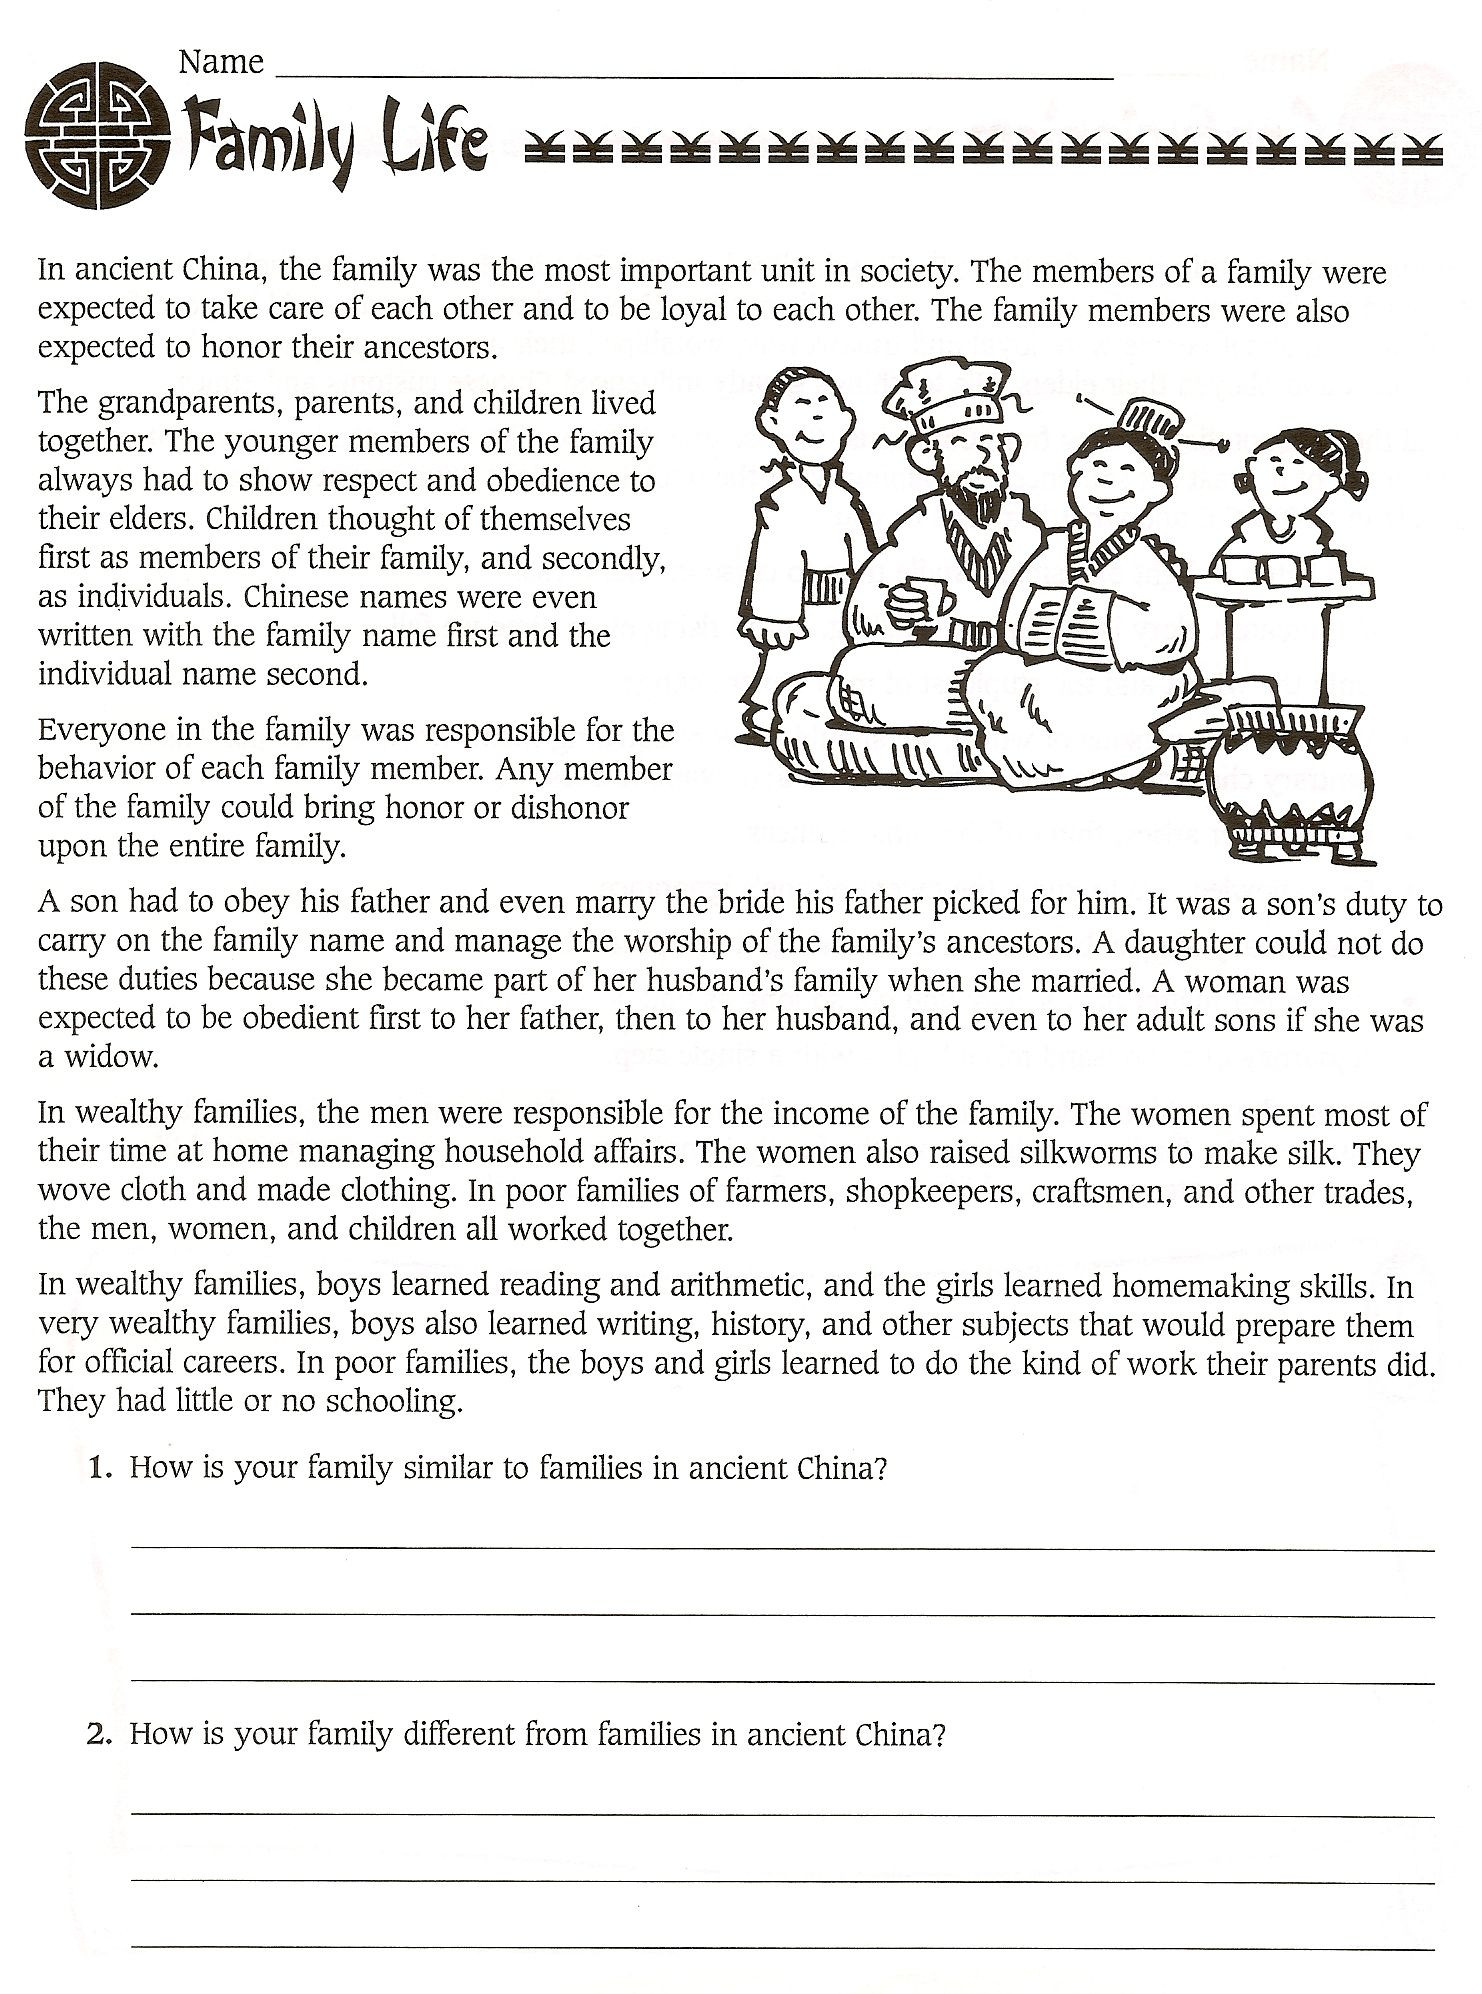 7th Grade World History Worksheets 6th Grade social Stu S Ancient China Worksheets Free